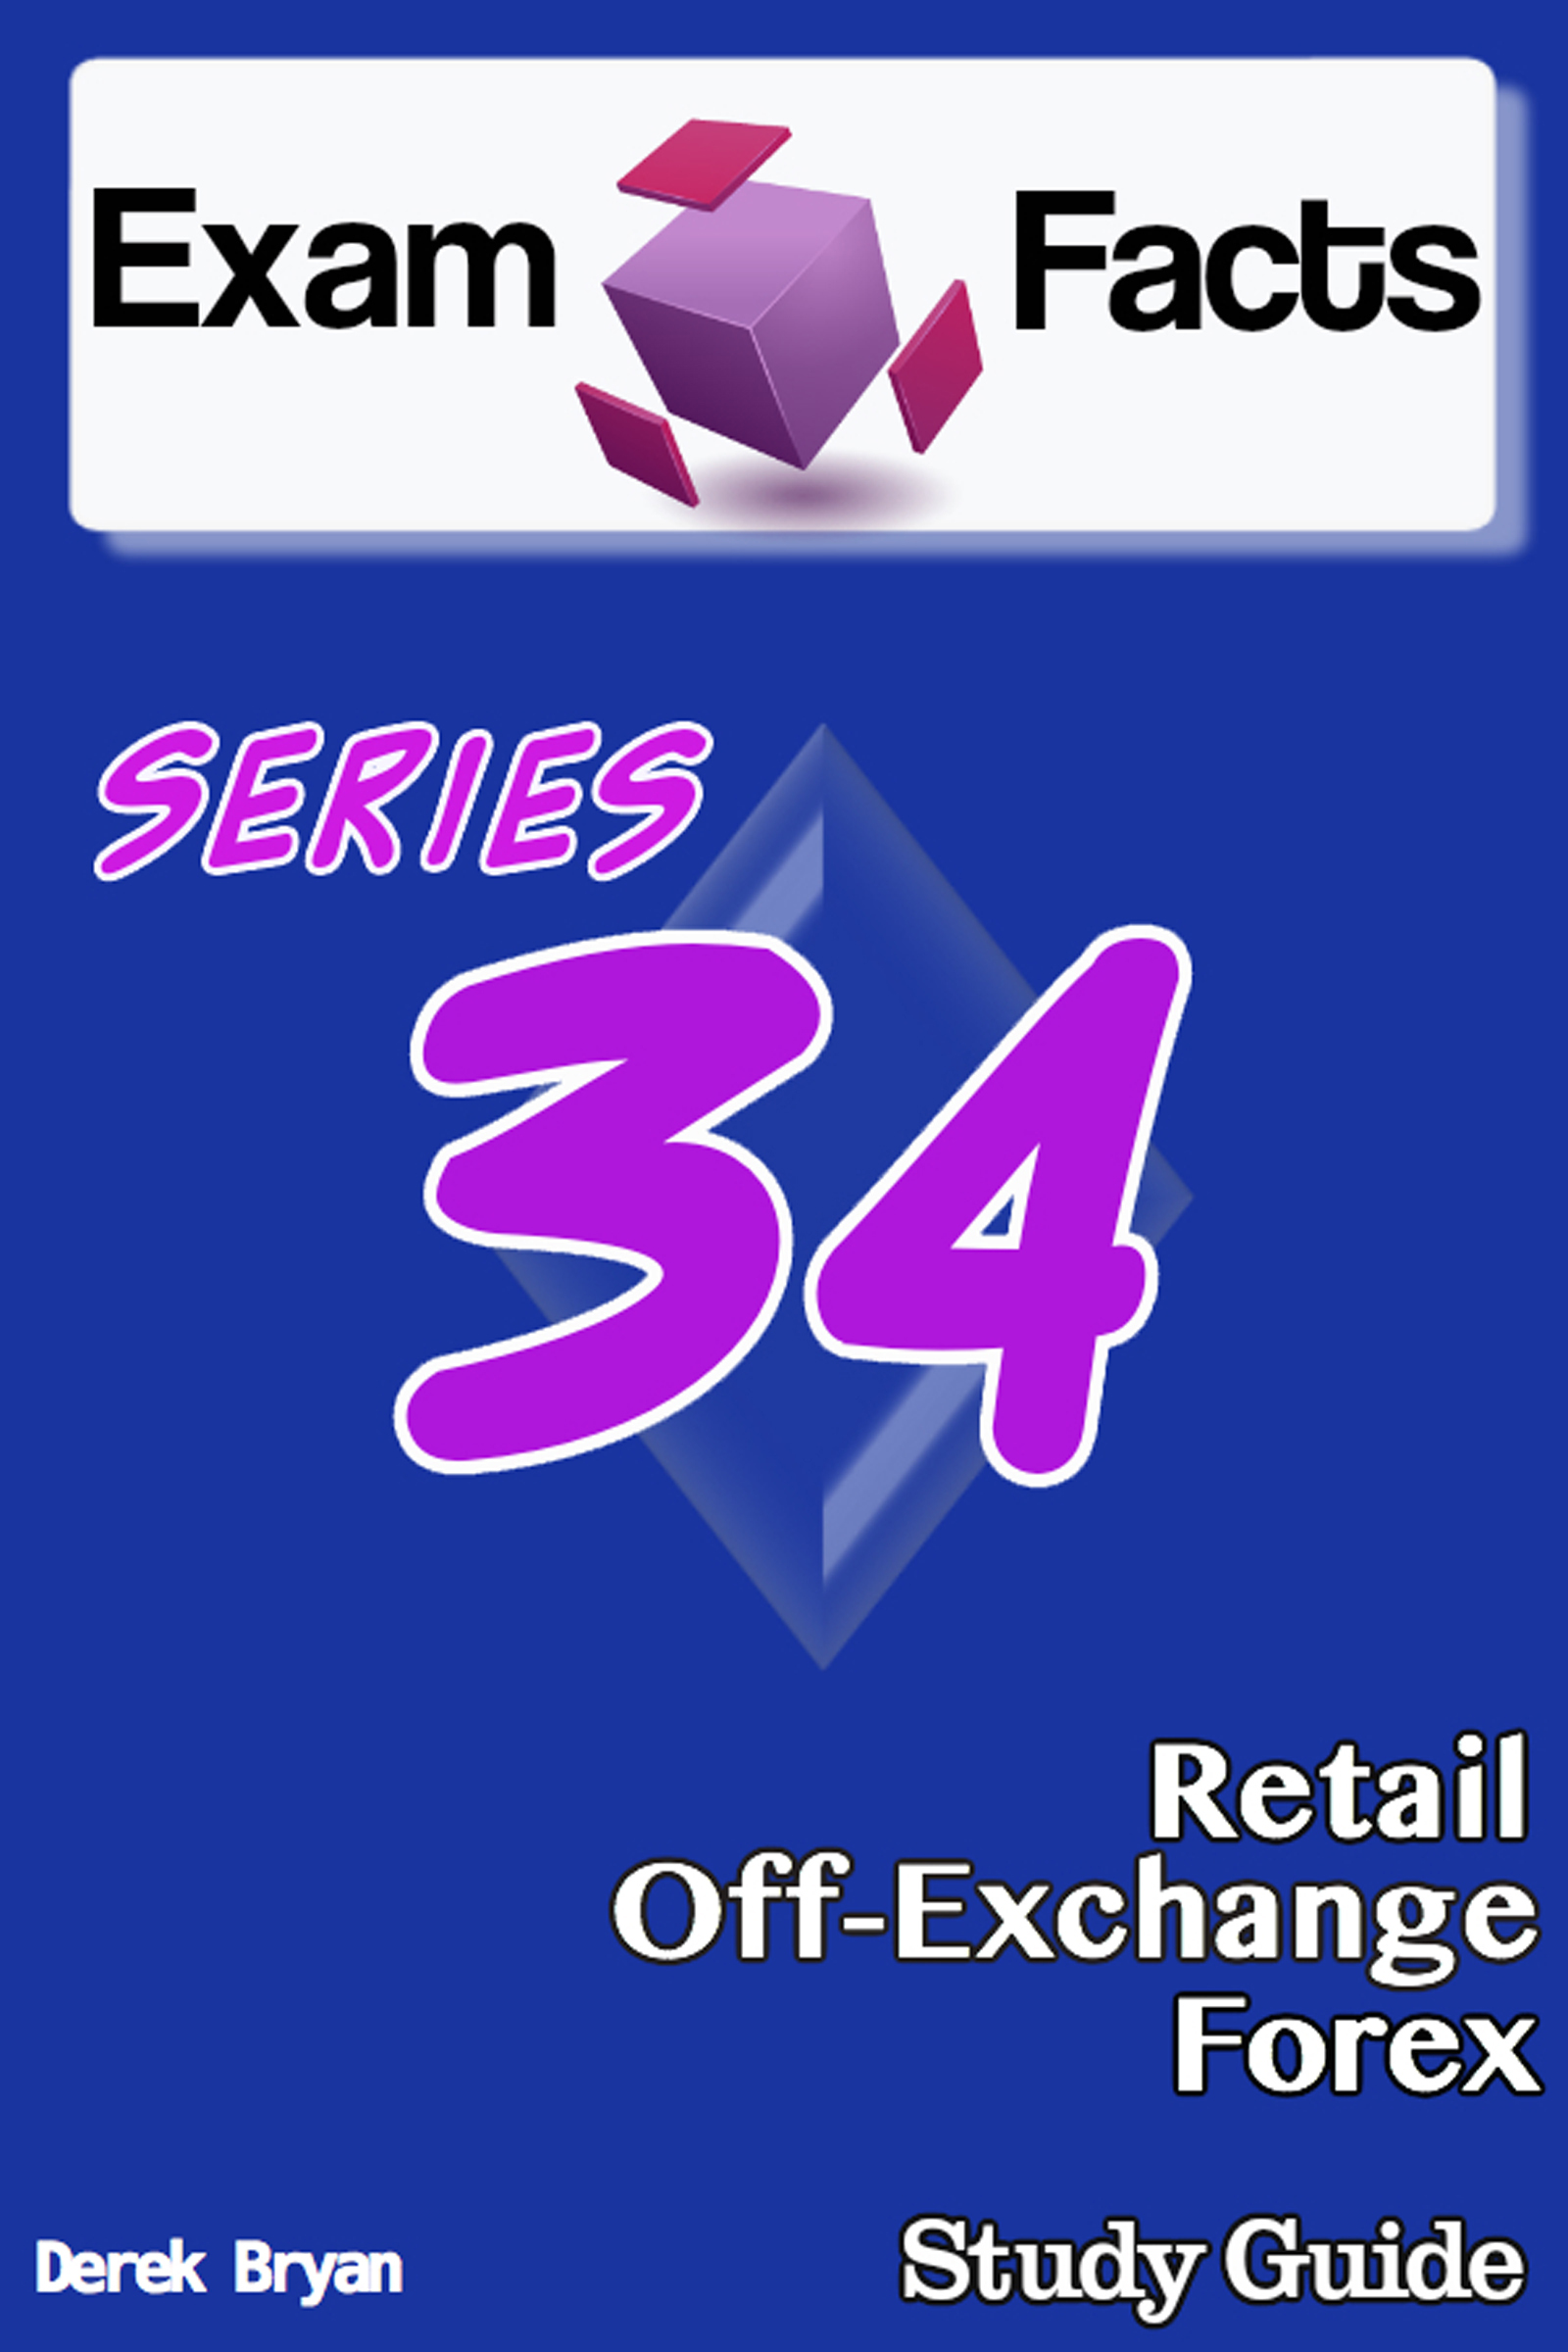 Exam Facts: Series 34 Retail Off-Exchange Forex Exam Study Guide